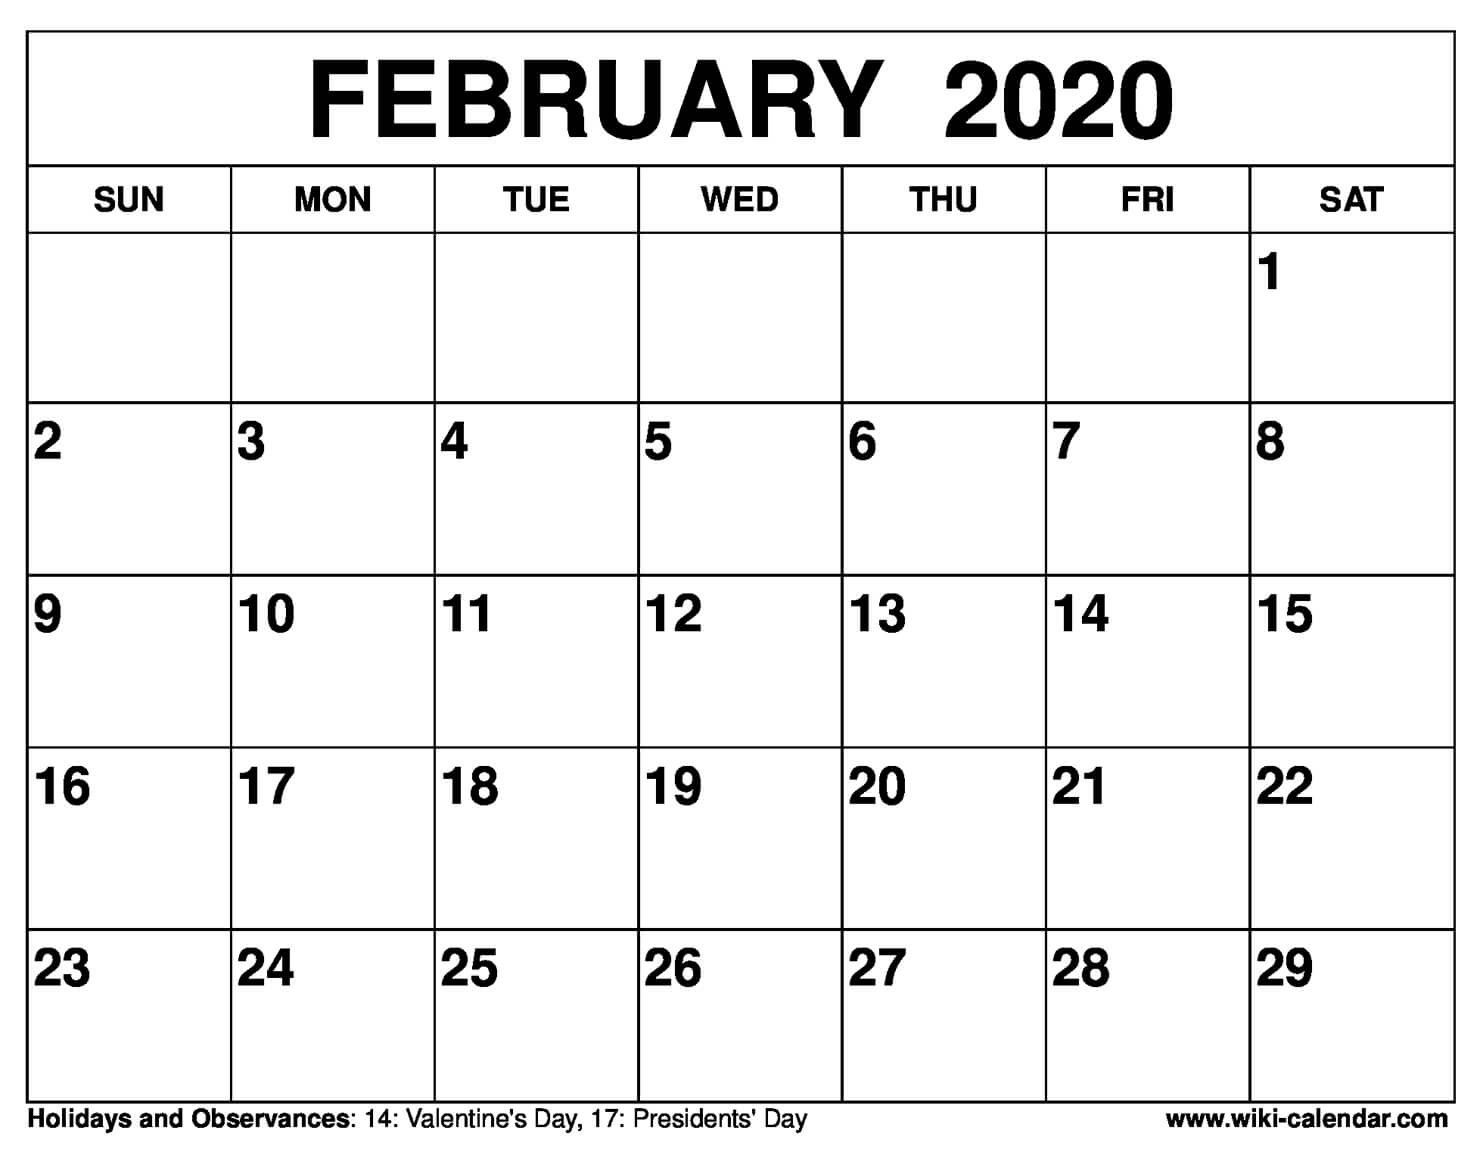 Free Printable February 2020 Calendar - Sharon Gore - Medium